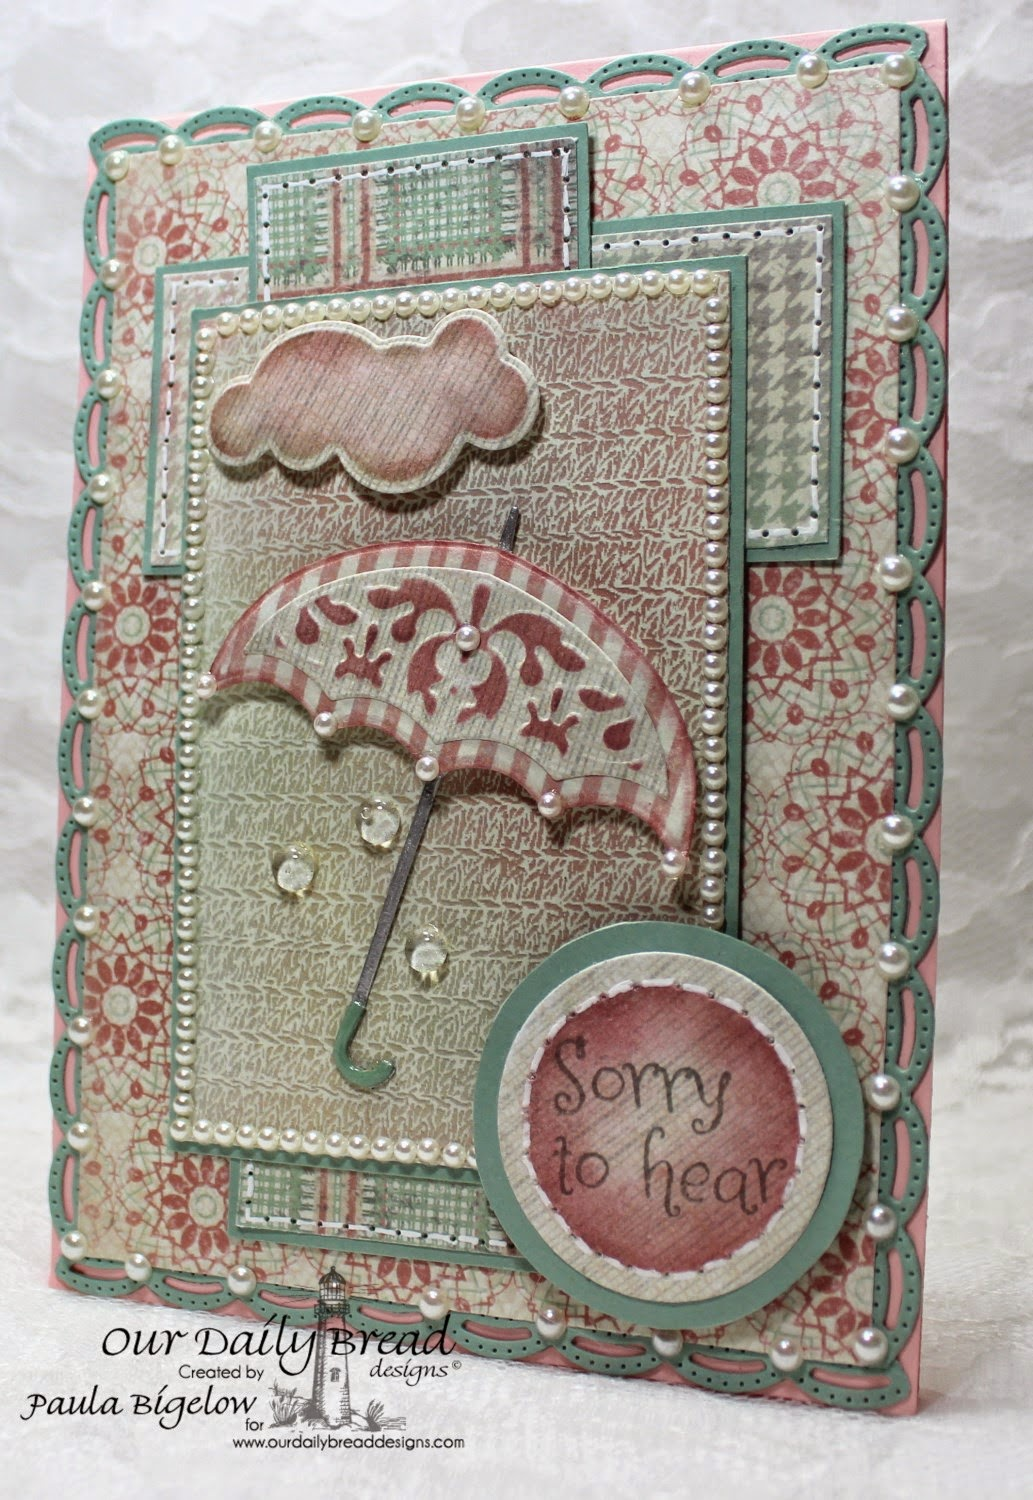 Our Daily Bread Designs, April Showers, ODBD Umbrellas Dies, ODBD Clouds & Raindrops Dies, ODBD Recipe & Tags Dies, ODBD Beautiful Borders Dies, Soulful Stitches Paper Collection, Designed by Paula Bigelow